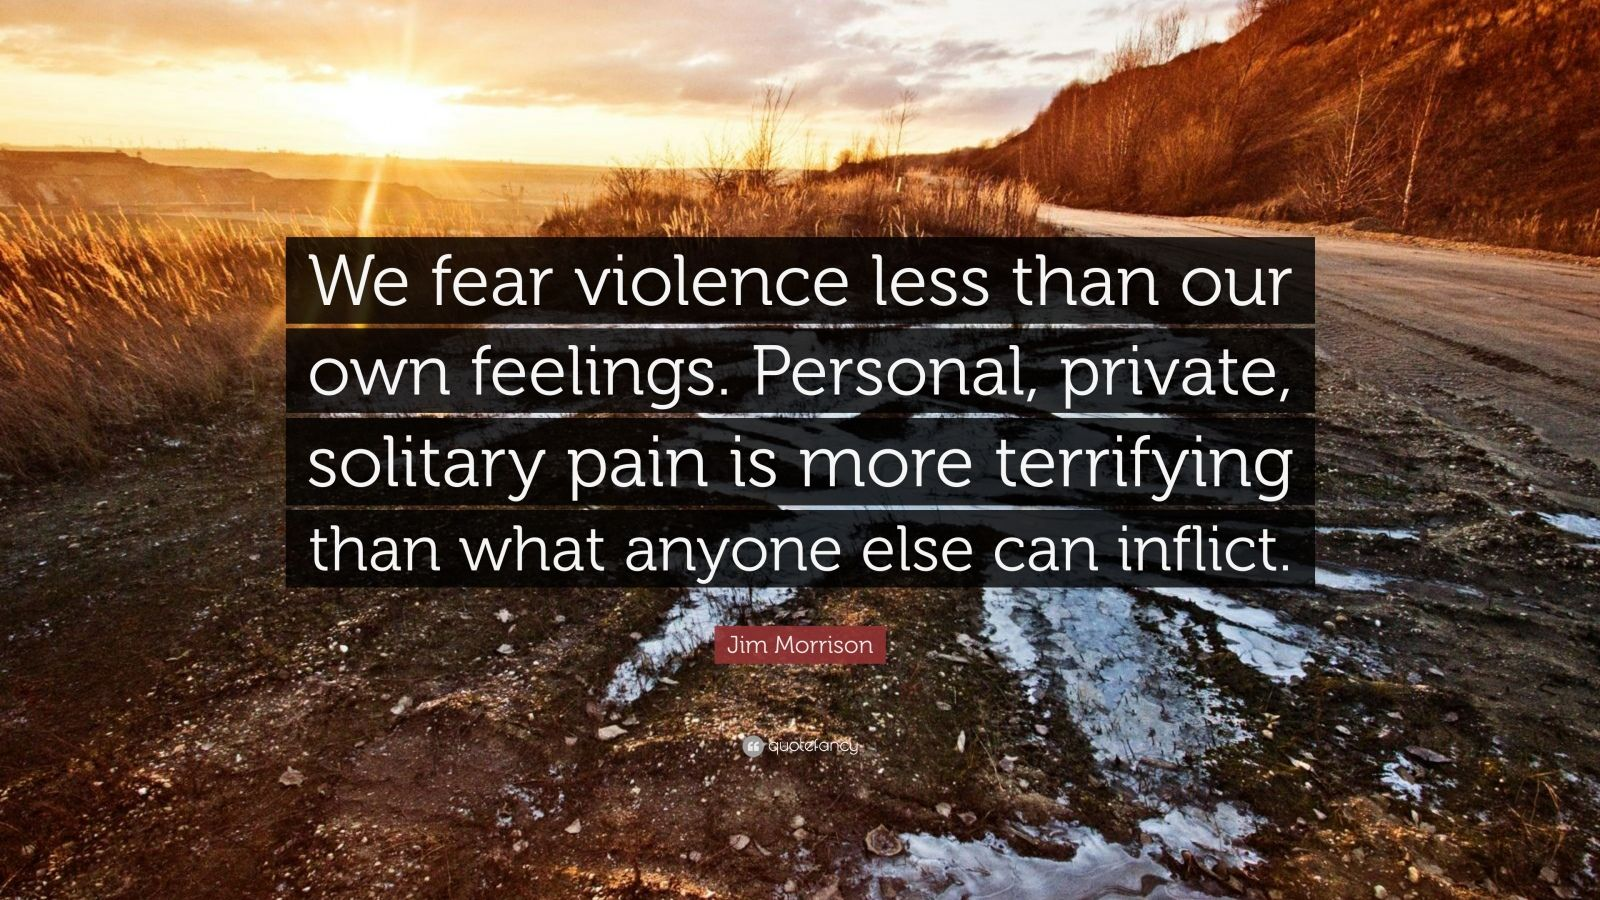 """Jim Morrison Quote: """"We fear violence less than our own feelings. Personal, private, solitary pain is more terrifying than what anyone else can inflict."""""""